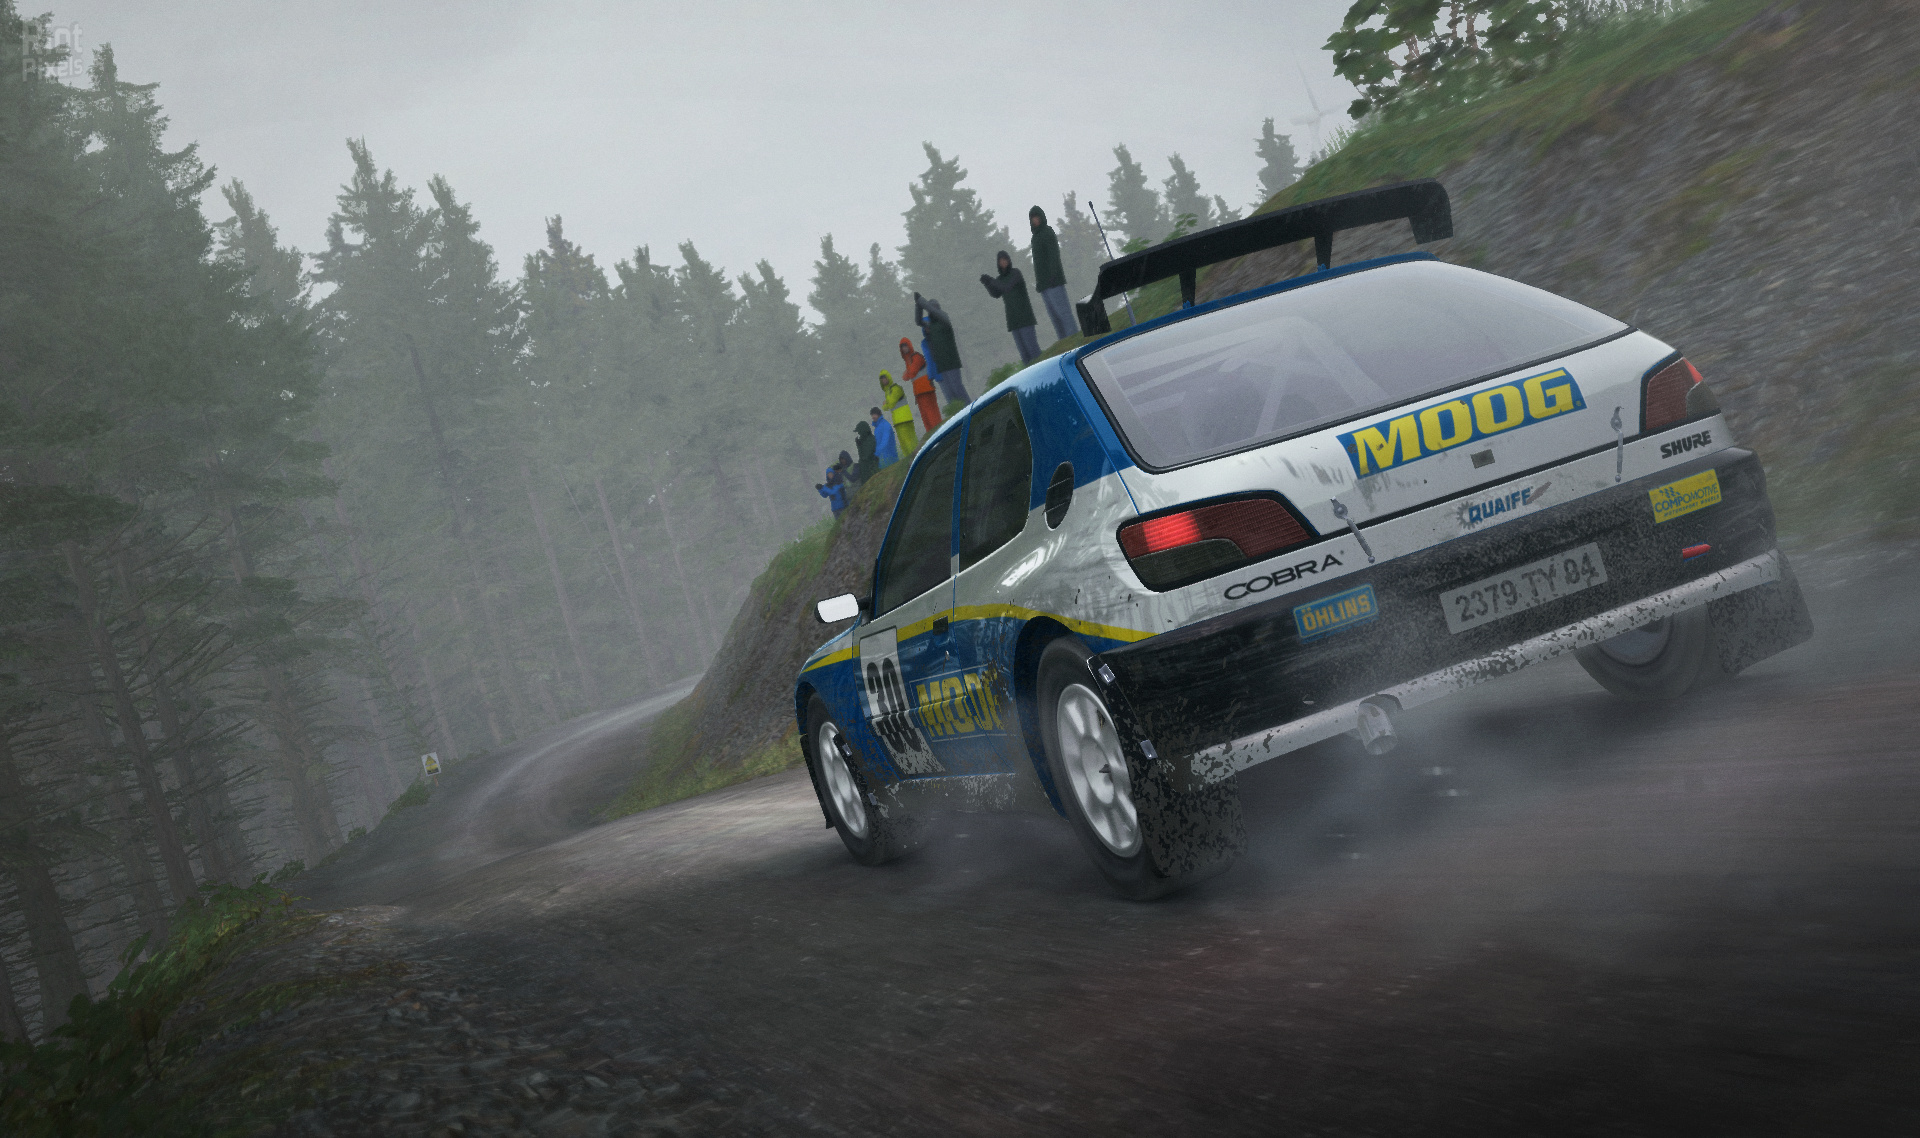 DiRT Rally Crack Only (v1.0) RUS/ENG reloaded Torrminatorr